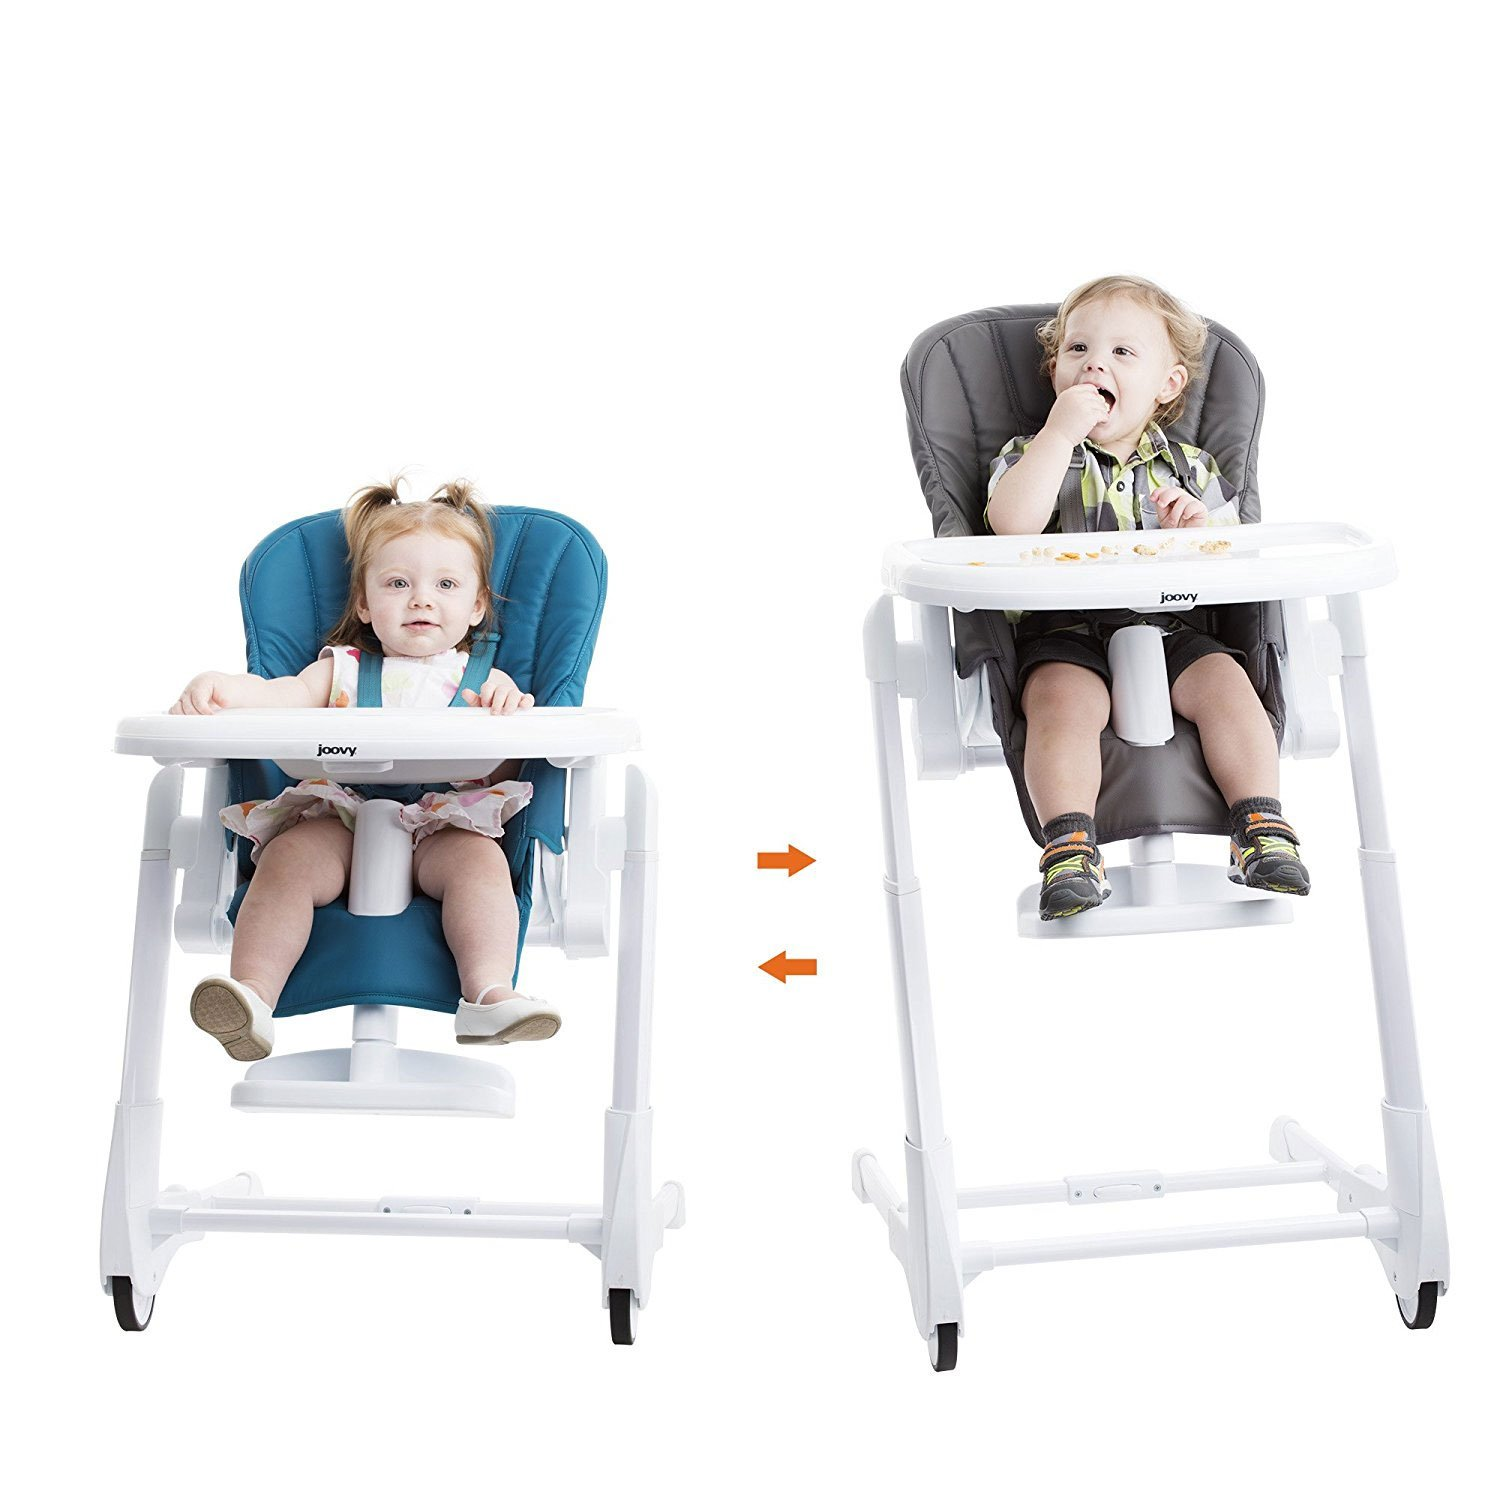 10 best baby high chairs for 2020 - Buyers Guide 1